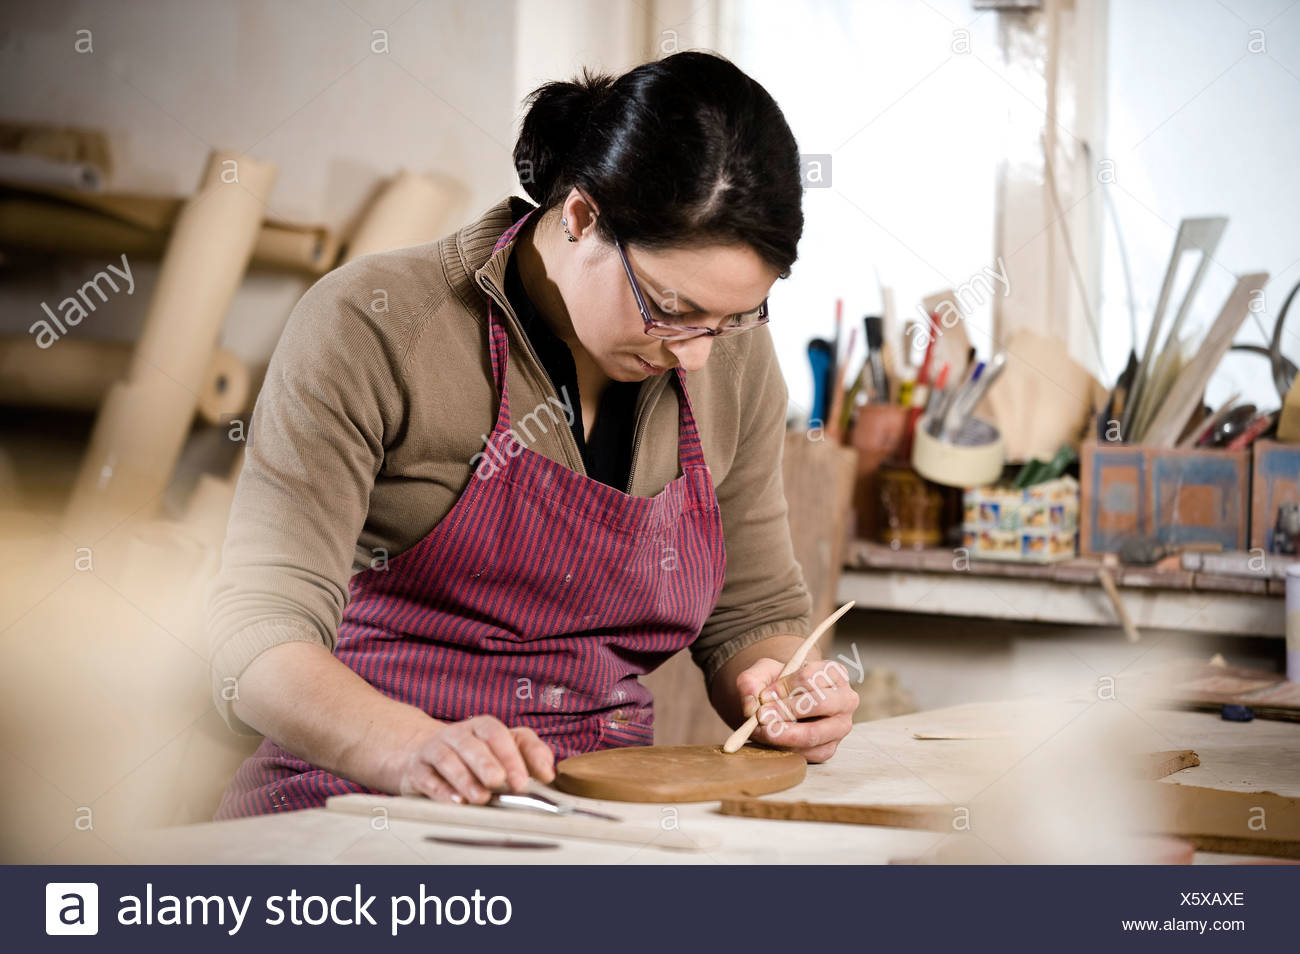 Craftswoman carving pattern into clay, Bavaria, Germany, Europe - Stock Image